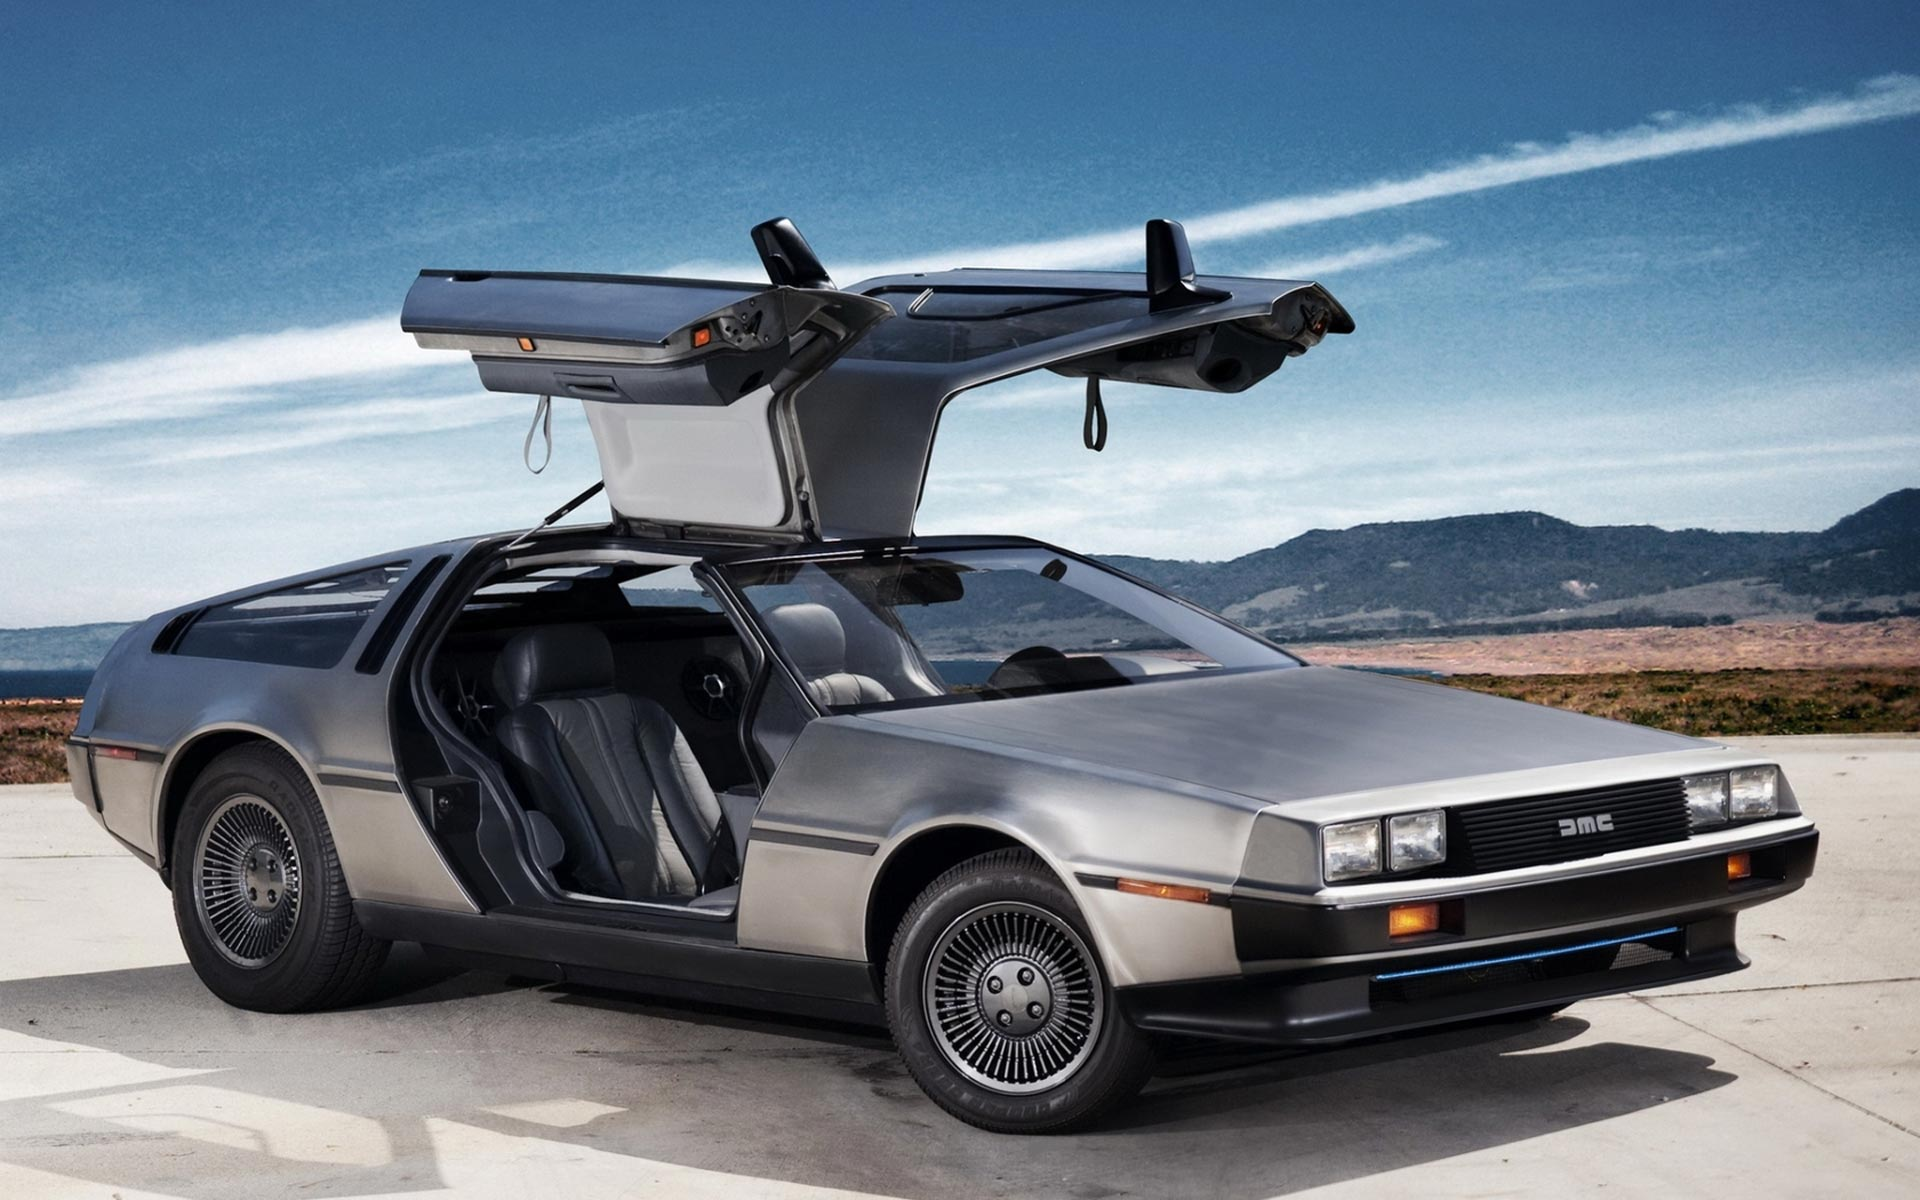 Delorean DMC-12 #7